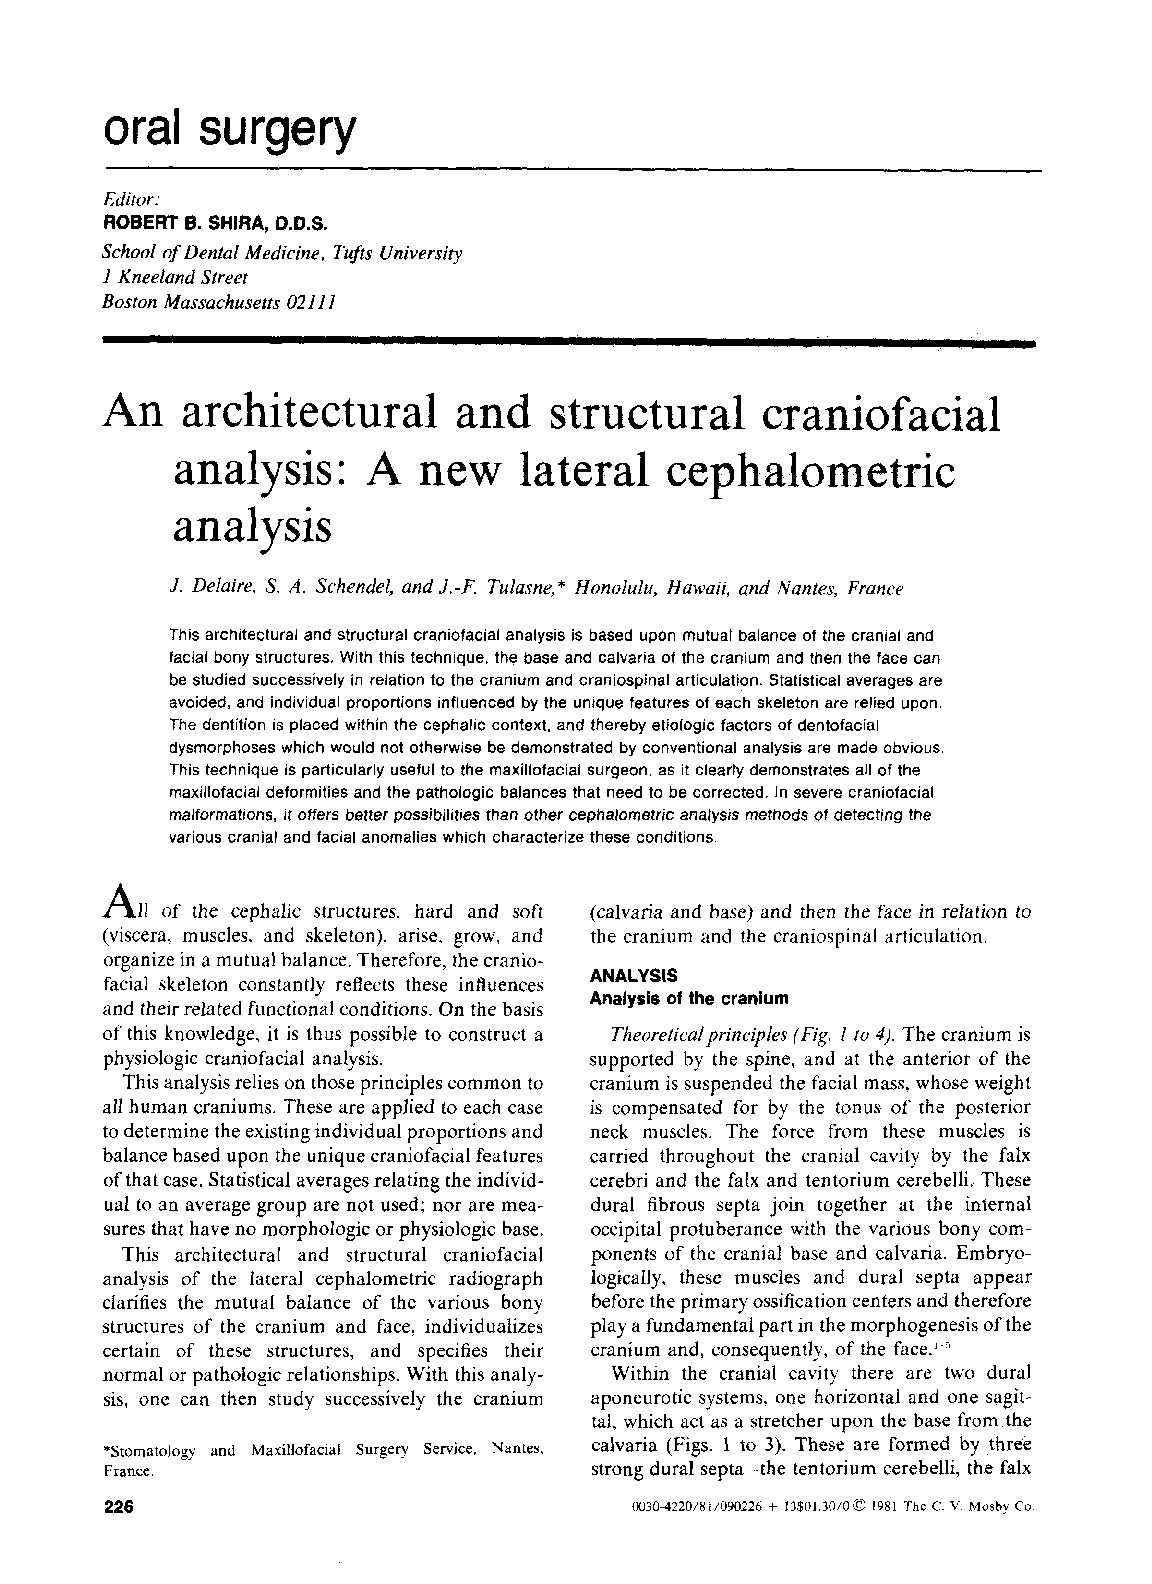 calam eacute o an architectural and structural craniofacial analysis a calameacuteo an architectural and structural craniofacial analysis a new lateral cephalometric analysis j delaire